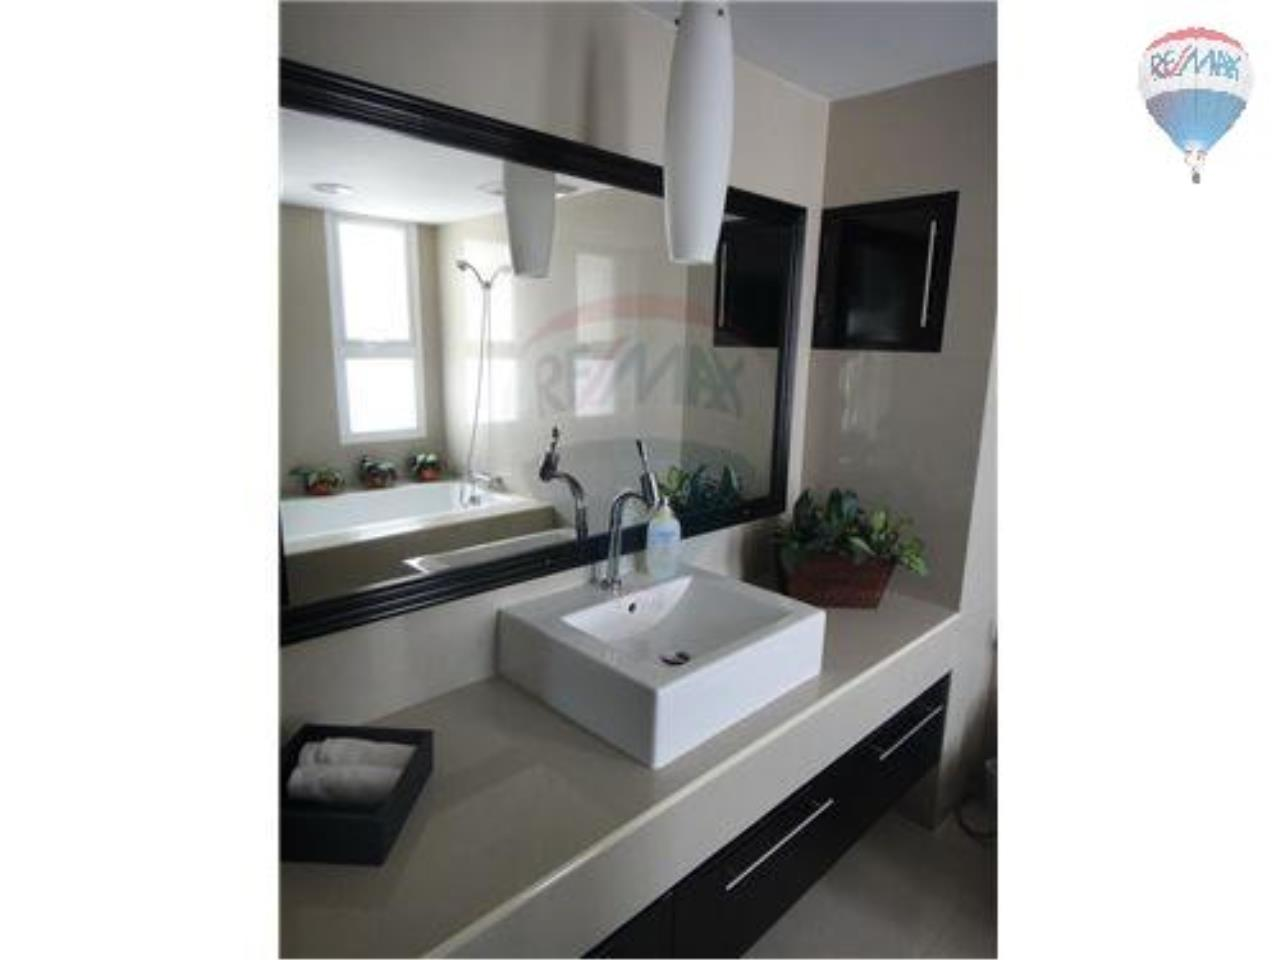 RE/MAX Properties Agency's 2 Bedroom Apartment - Baan Prompong Condo  9